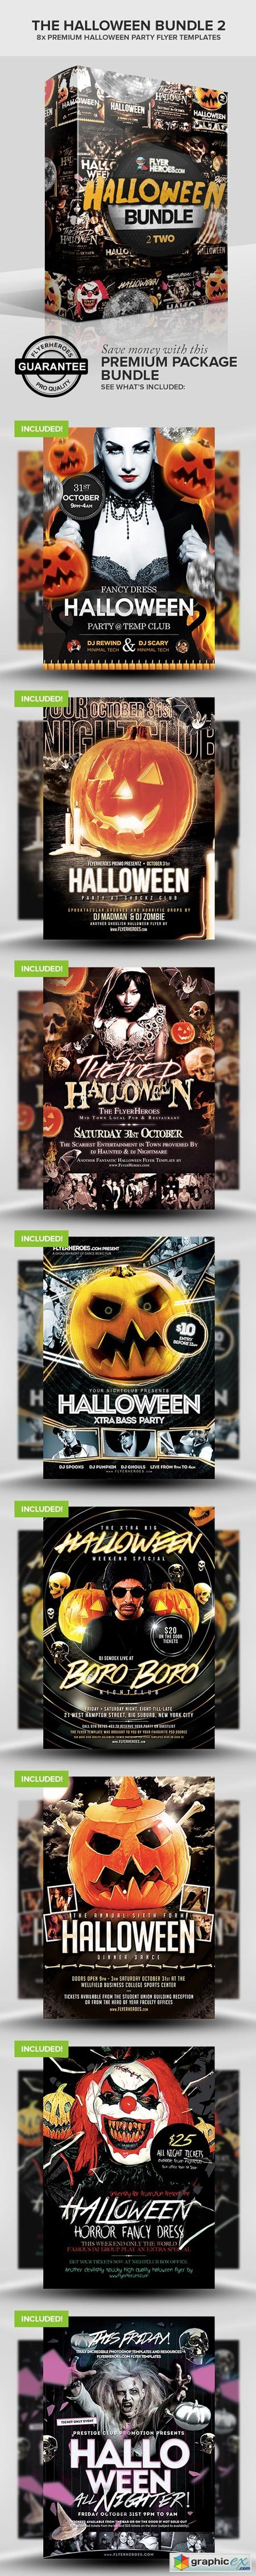 FlyerHeroes The Halloween Bundle 2